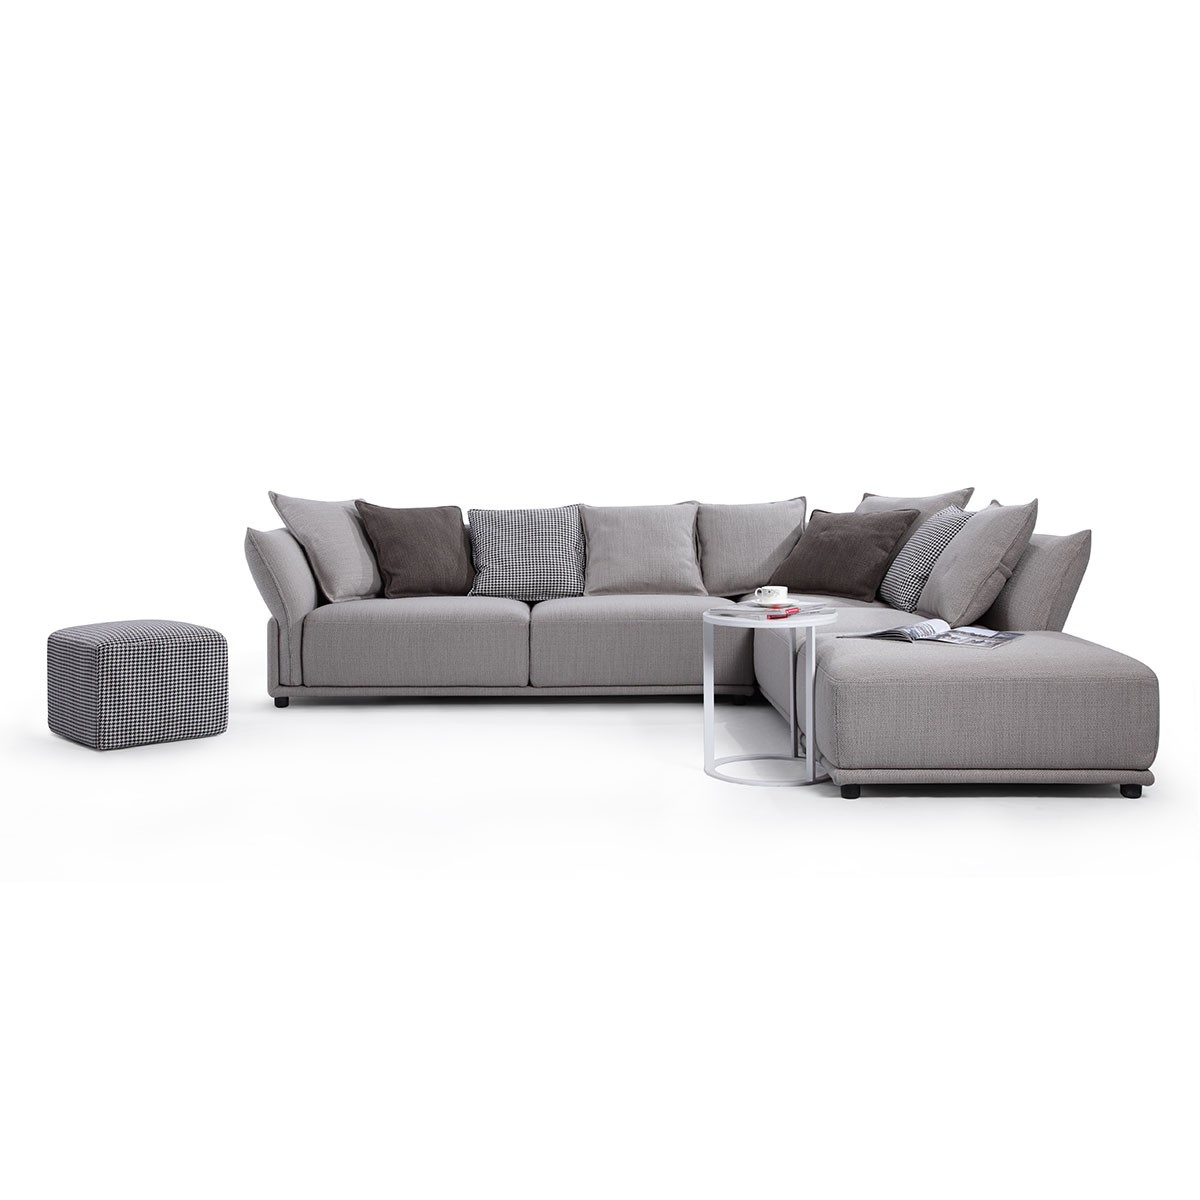 Fabric Right Facing Chaise Sectional With Ottoman And